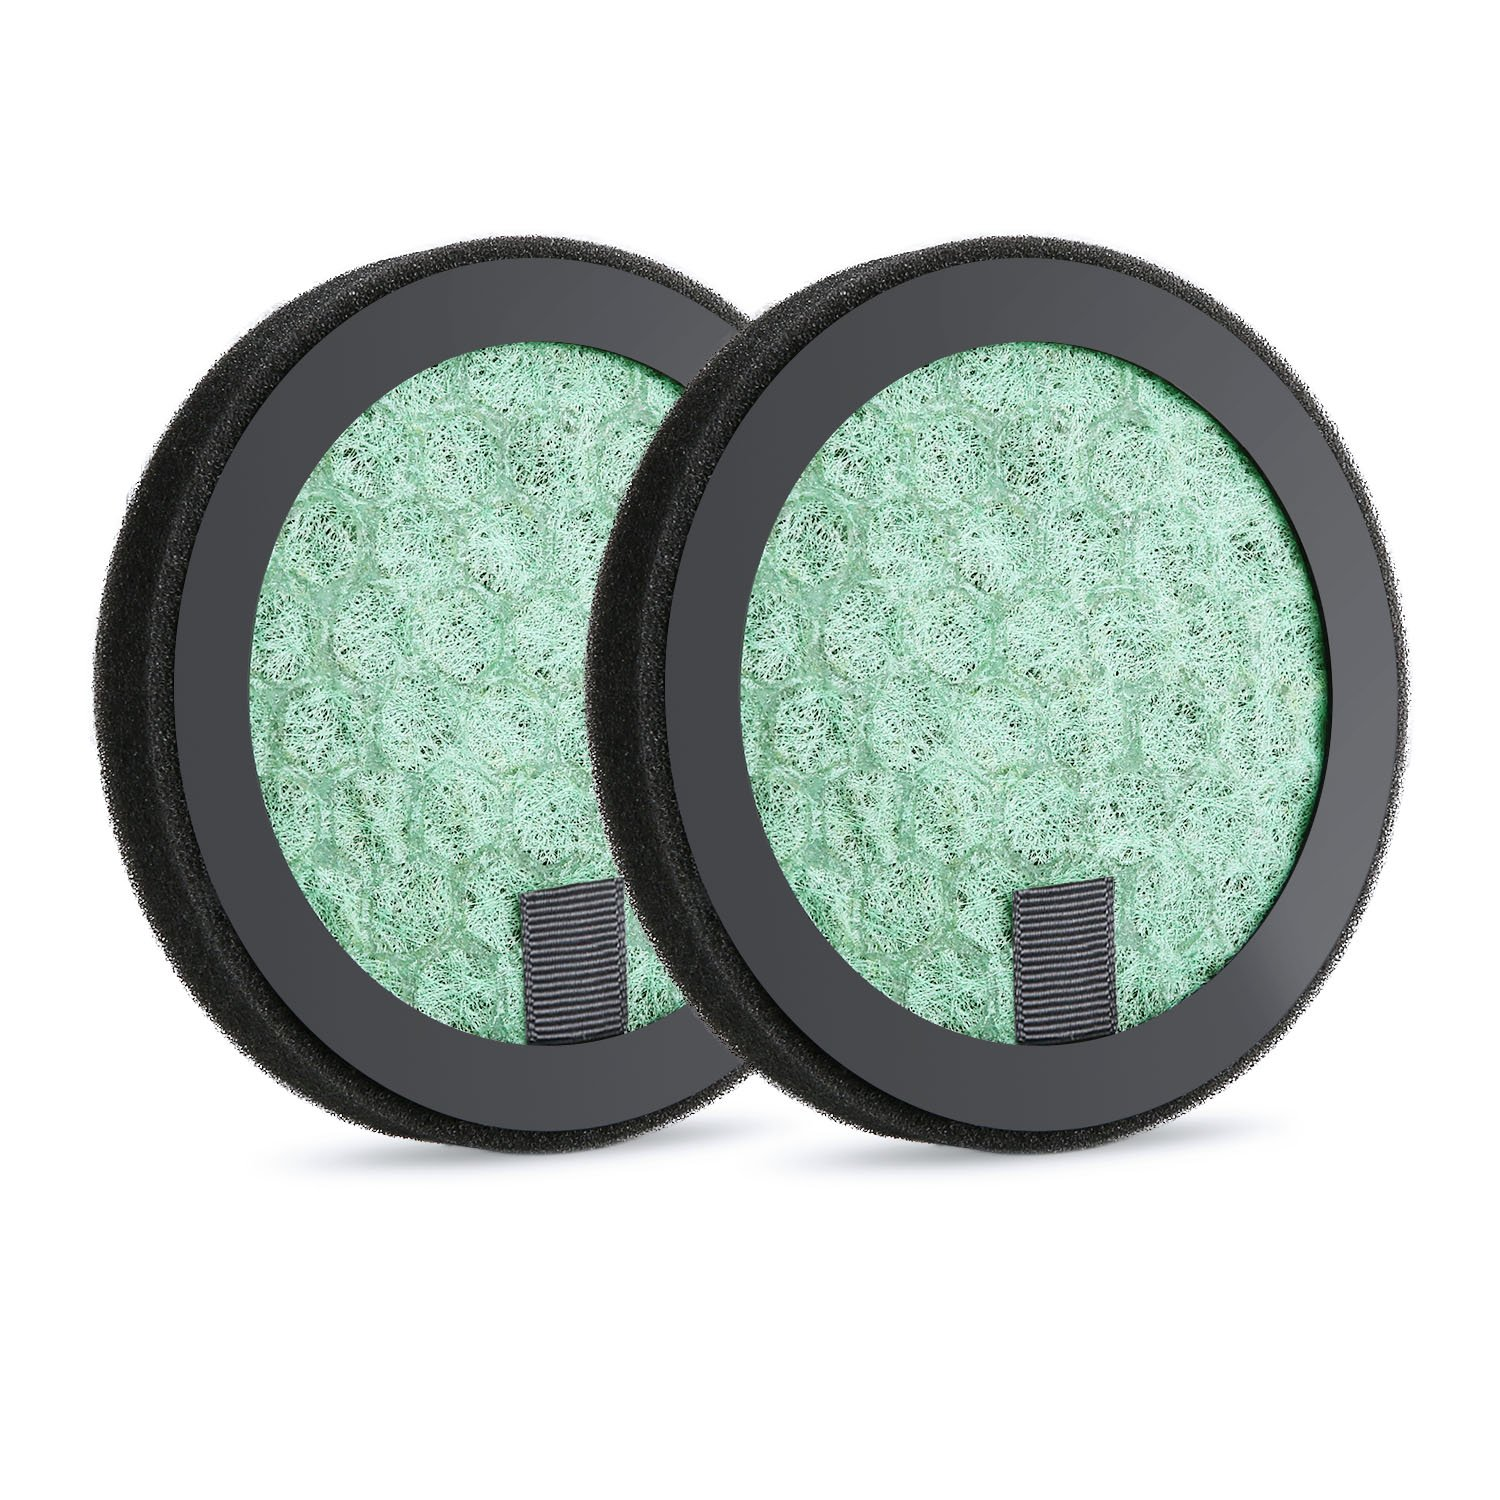 NATOL Car Air Purifier Filter, True HEPA Activated Carbon Replacement Filter, 2 Pack